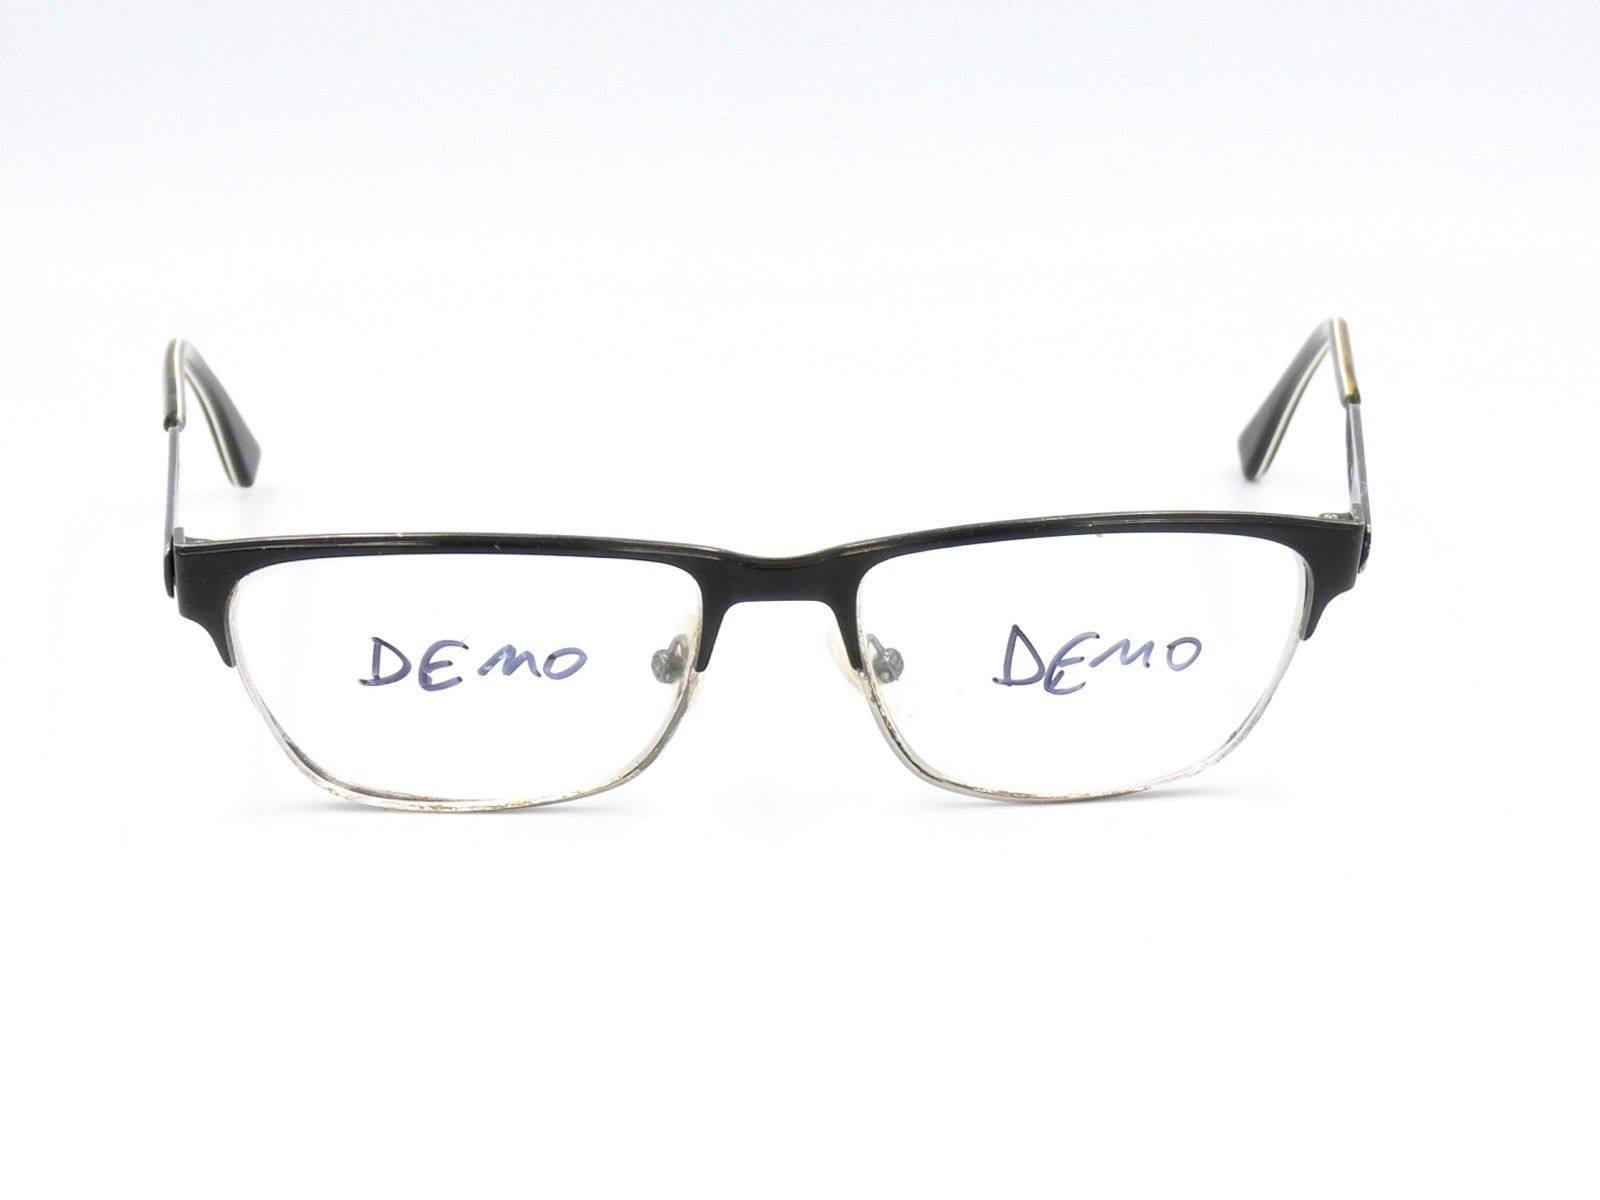 Primary image for Marc by Marc Jacobs MMJ 520 520 Unisex Eyeglasses Frame, Black. 53-16-140 #M35